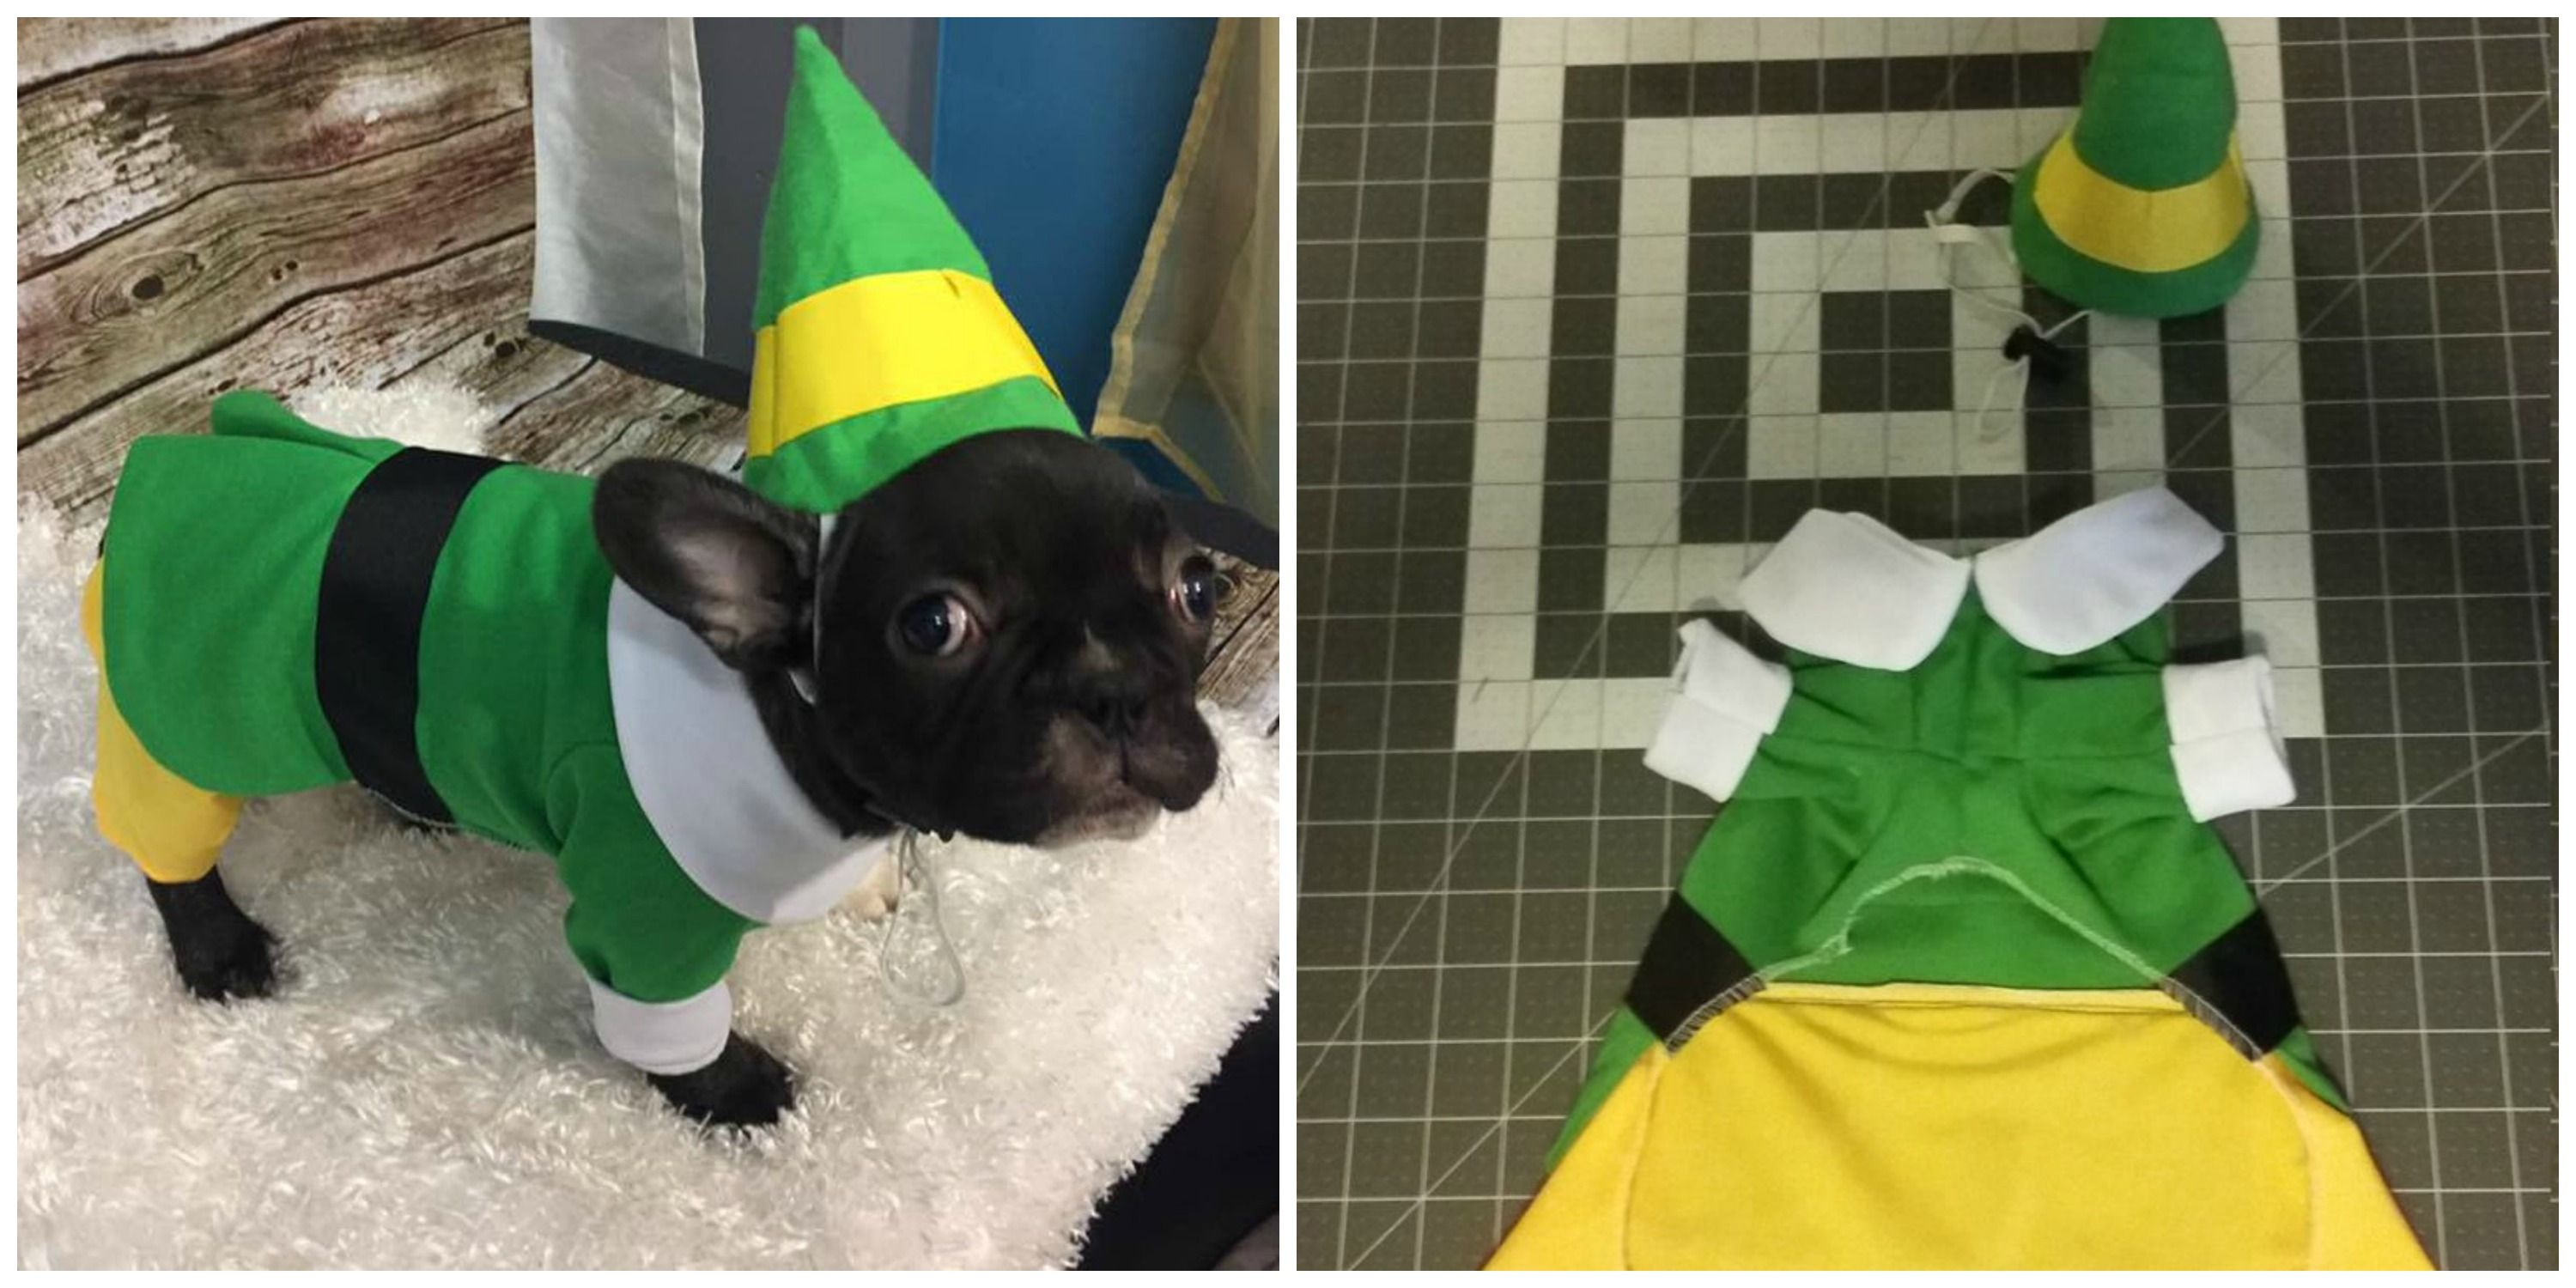 You Can Dress Up Your Dog In a Buddy the Elf Costume Thanks To Etsy